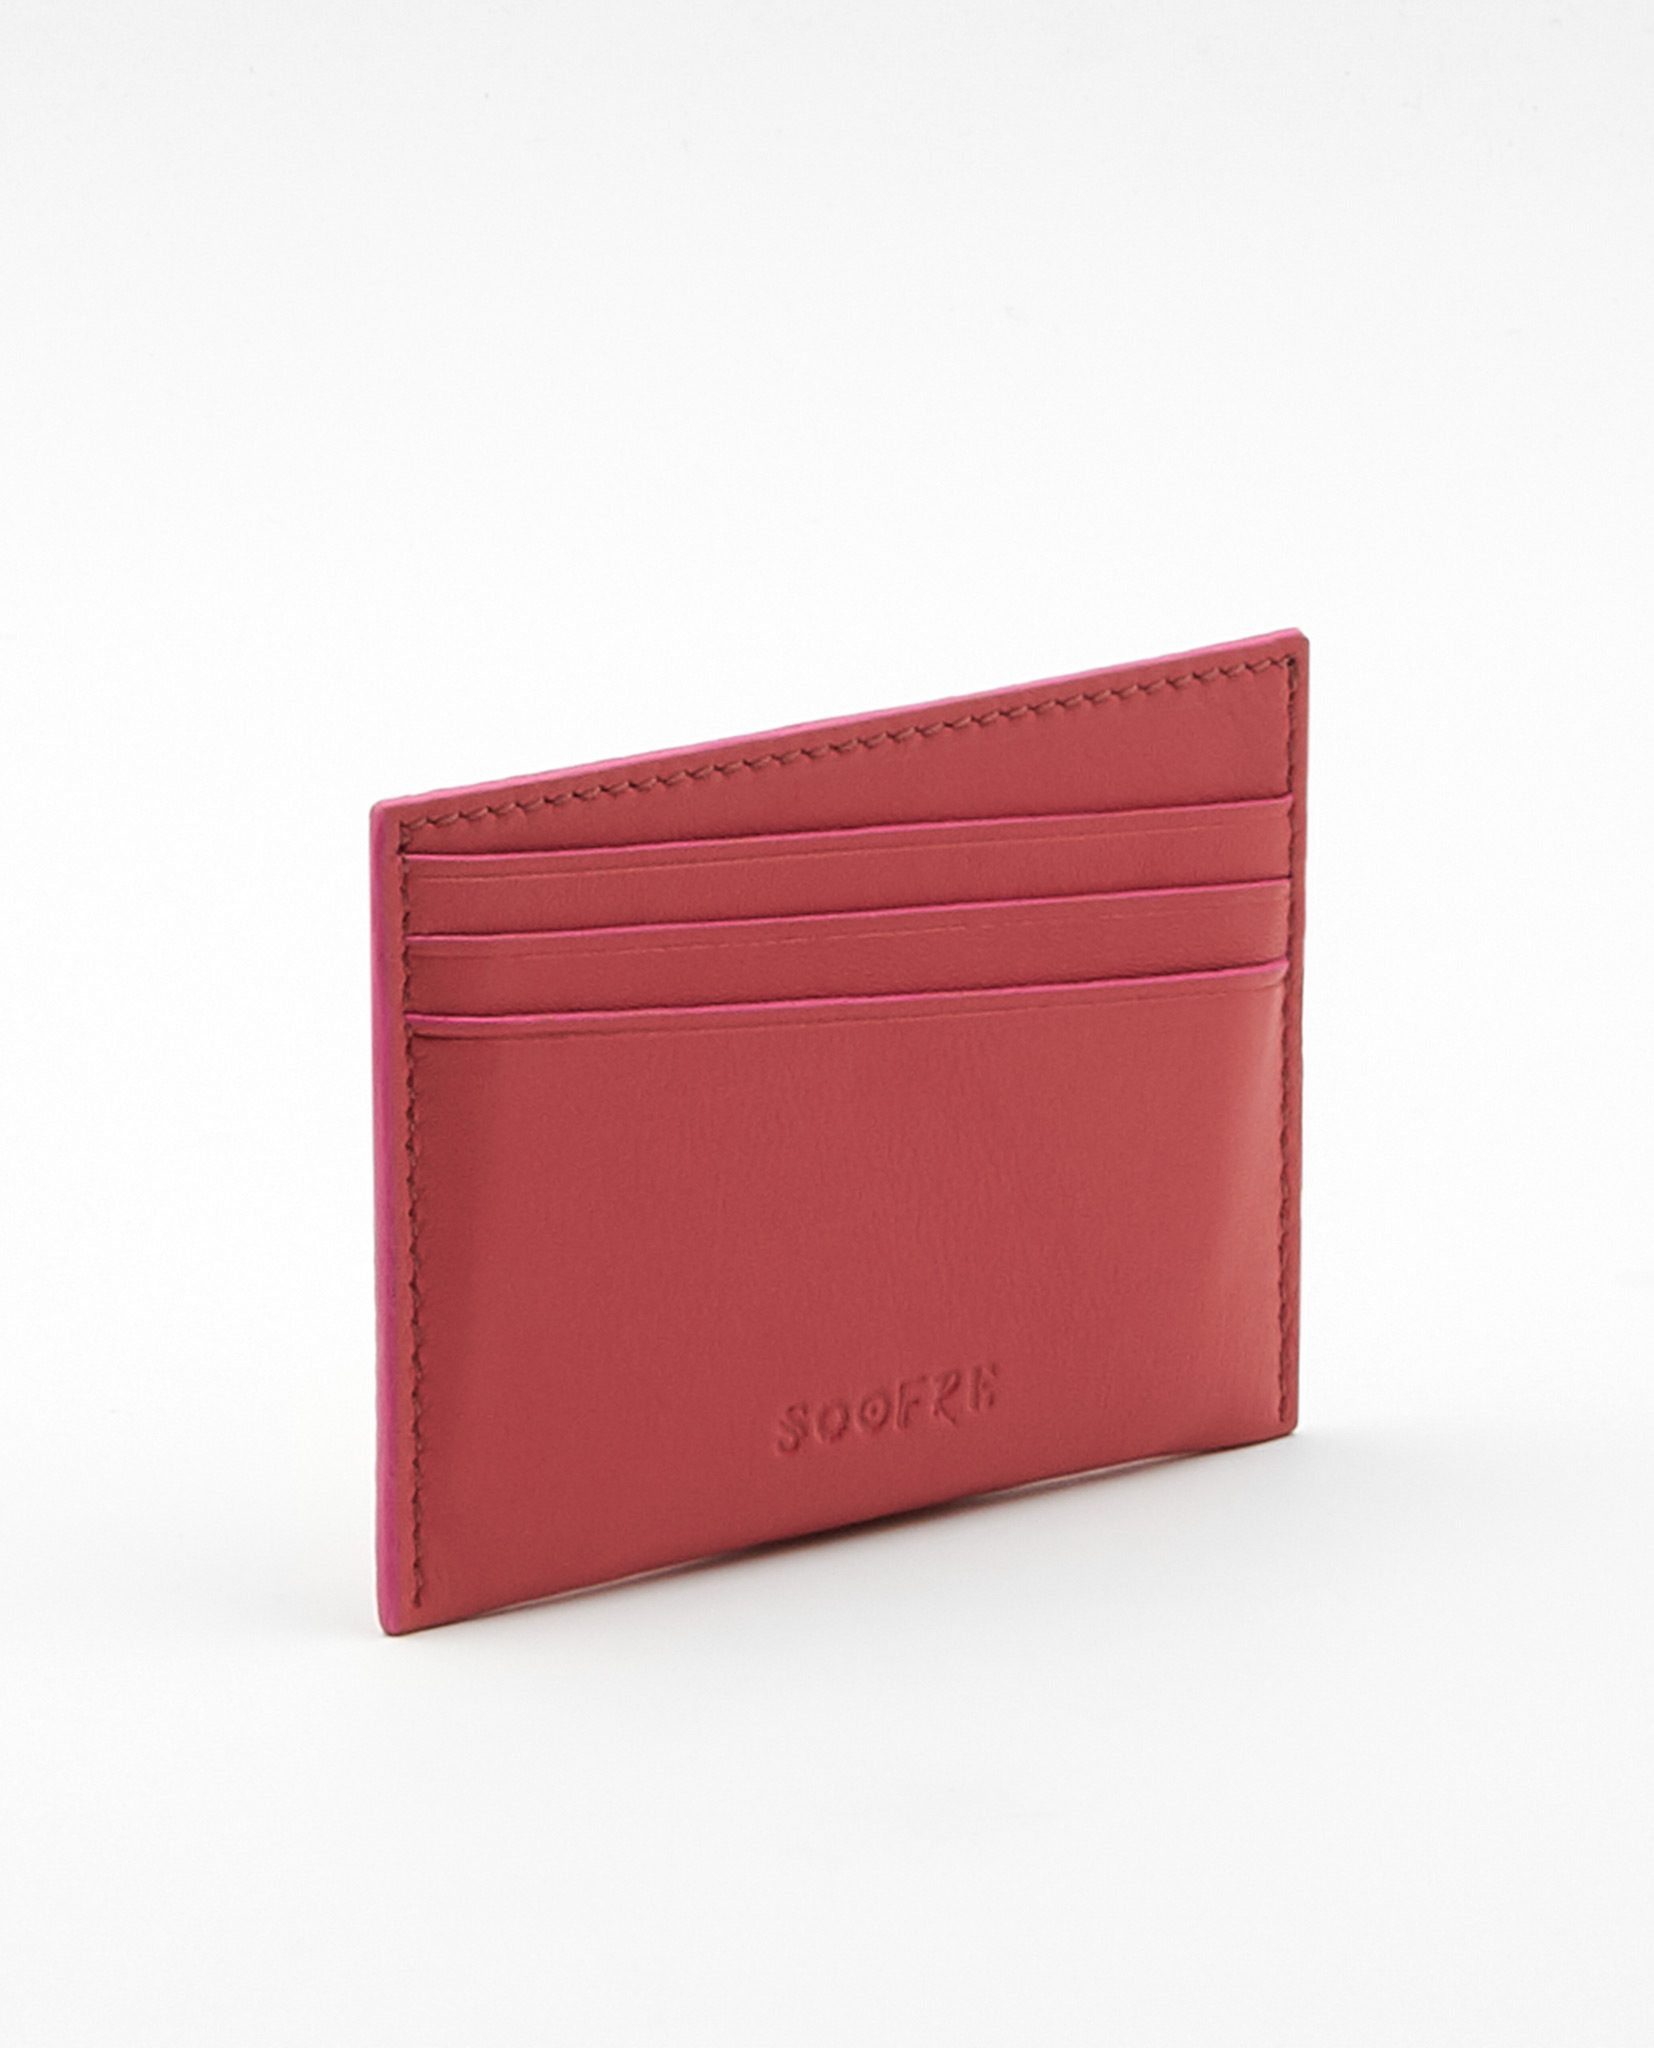 Soofre Card Holder Smooth Leather Coral-Fuchsia